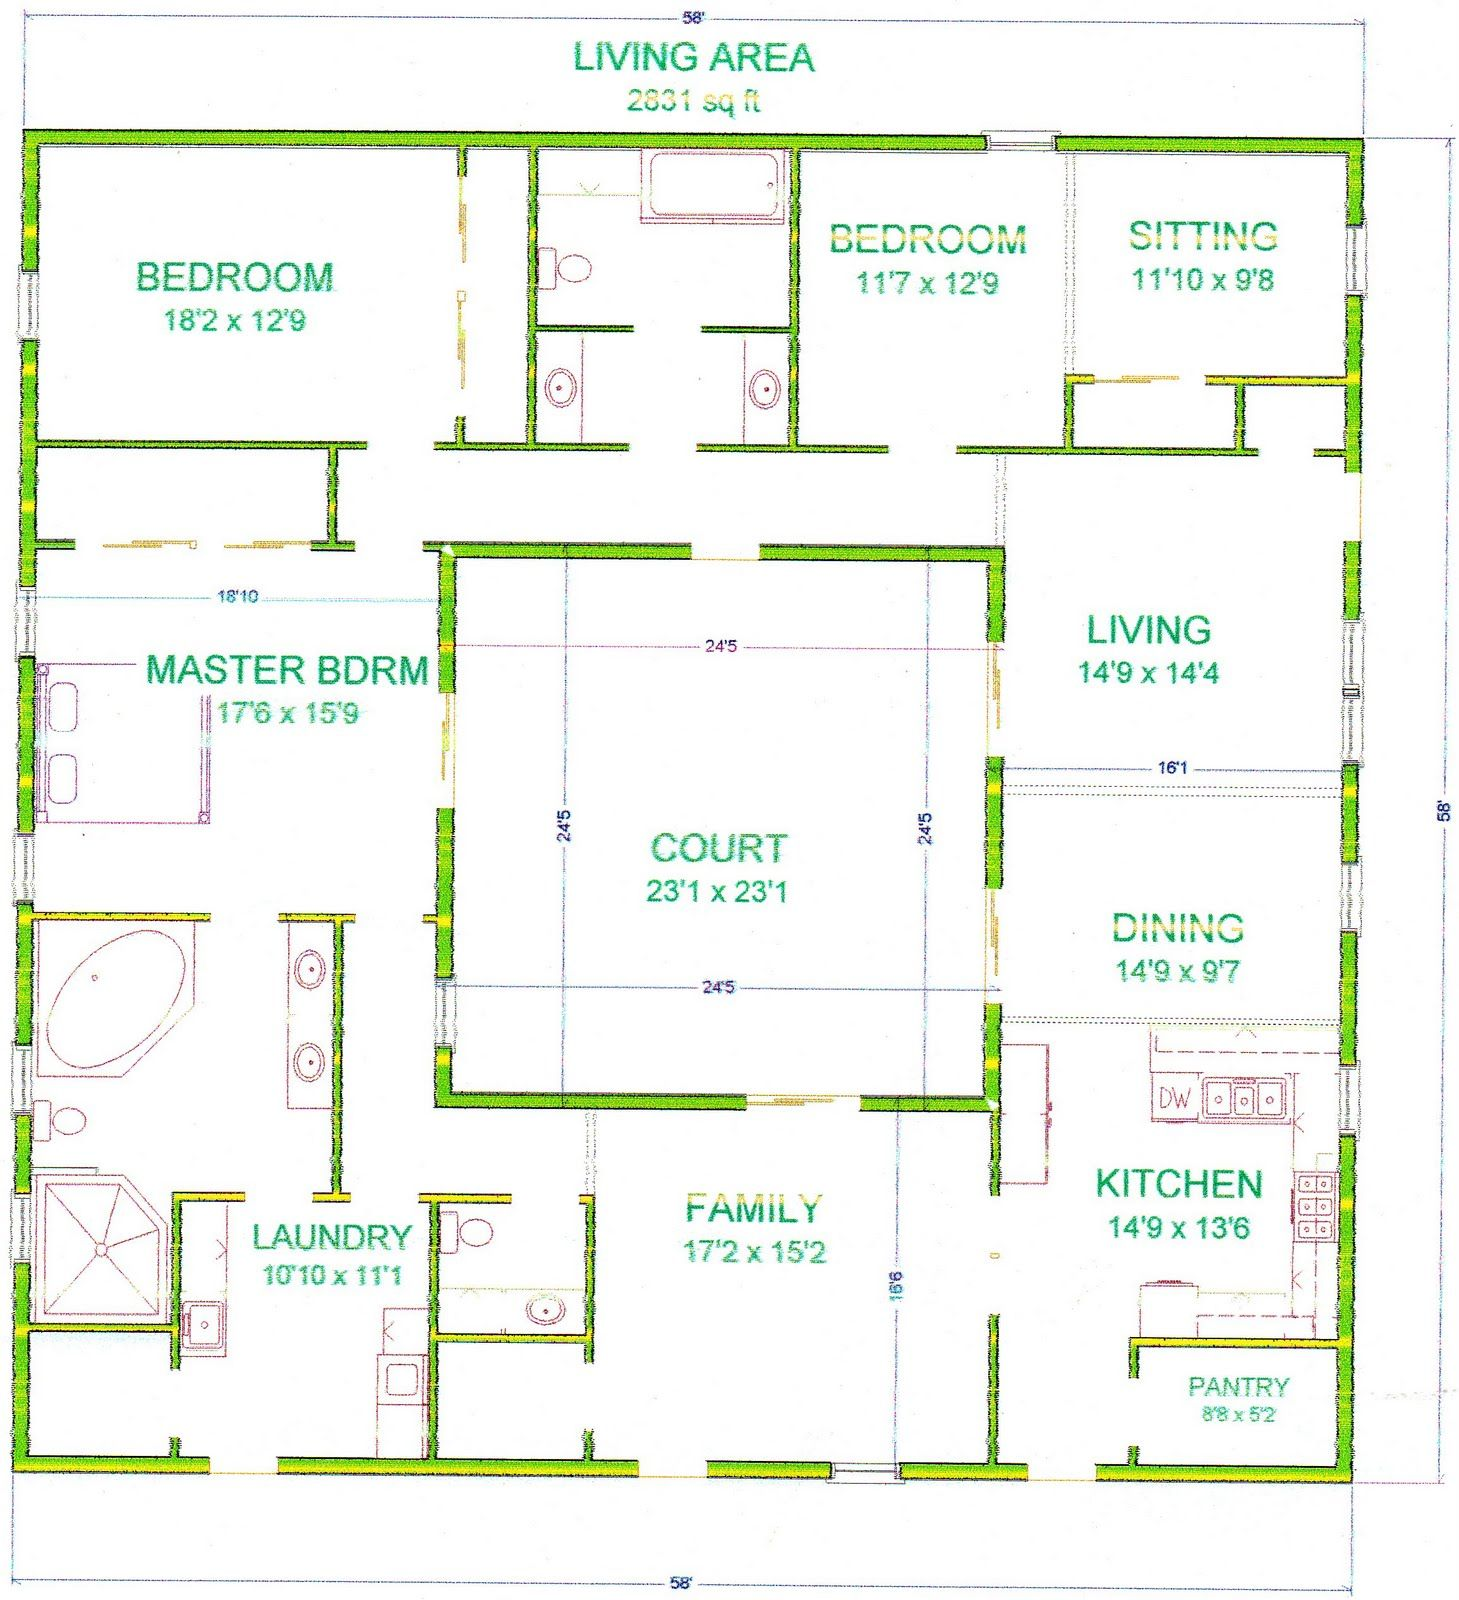 Center Courtyard House Plans With 2831 Square Feet This